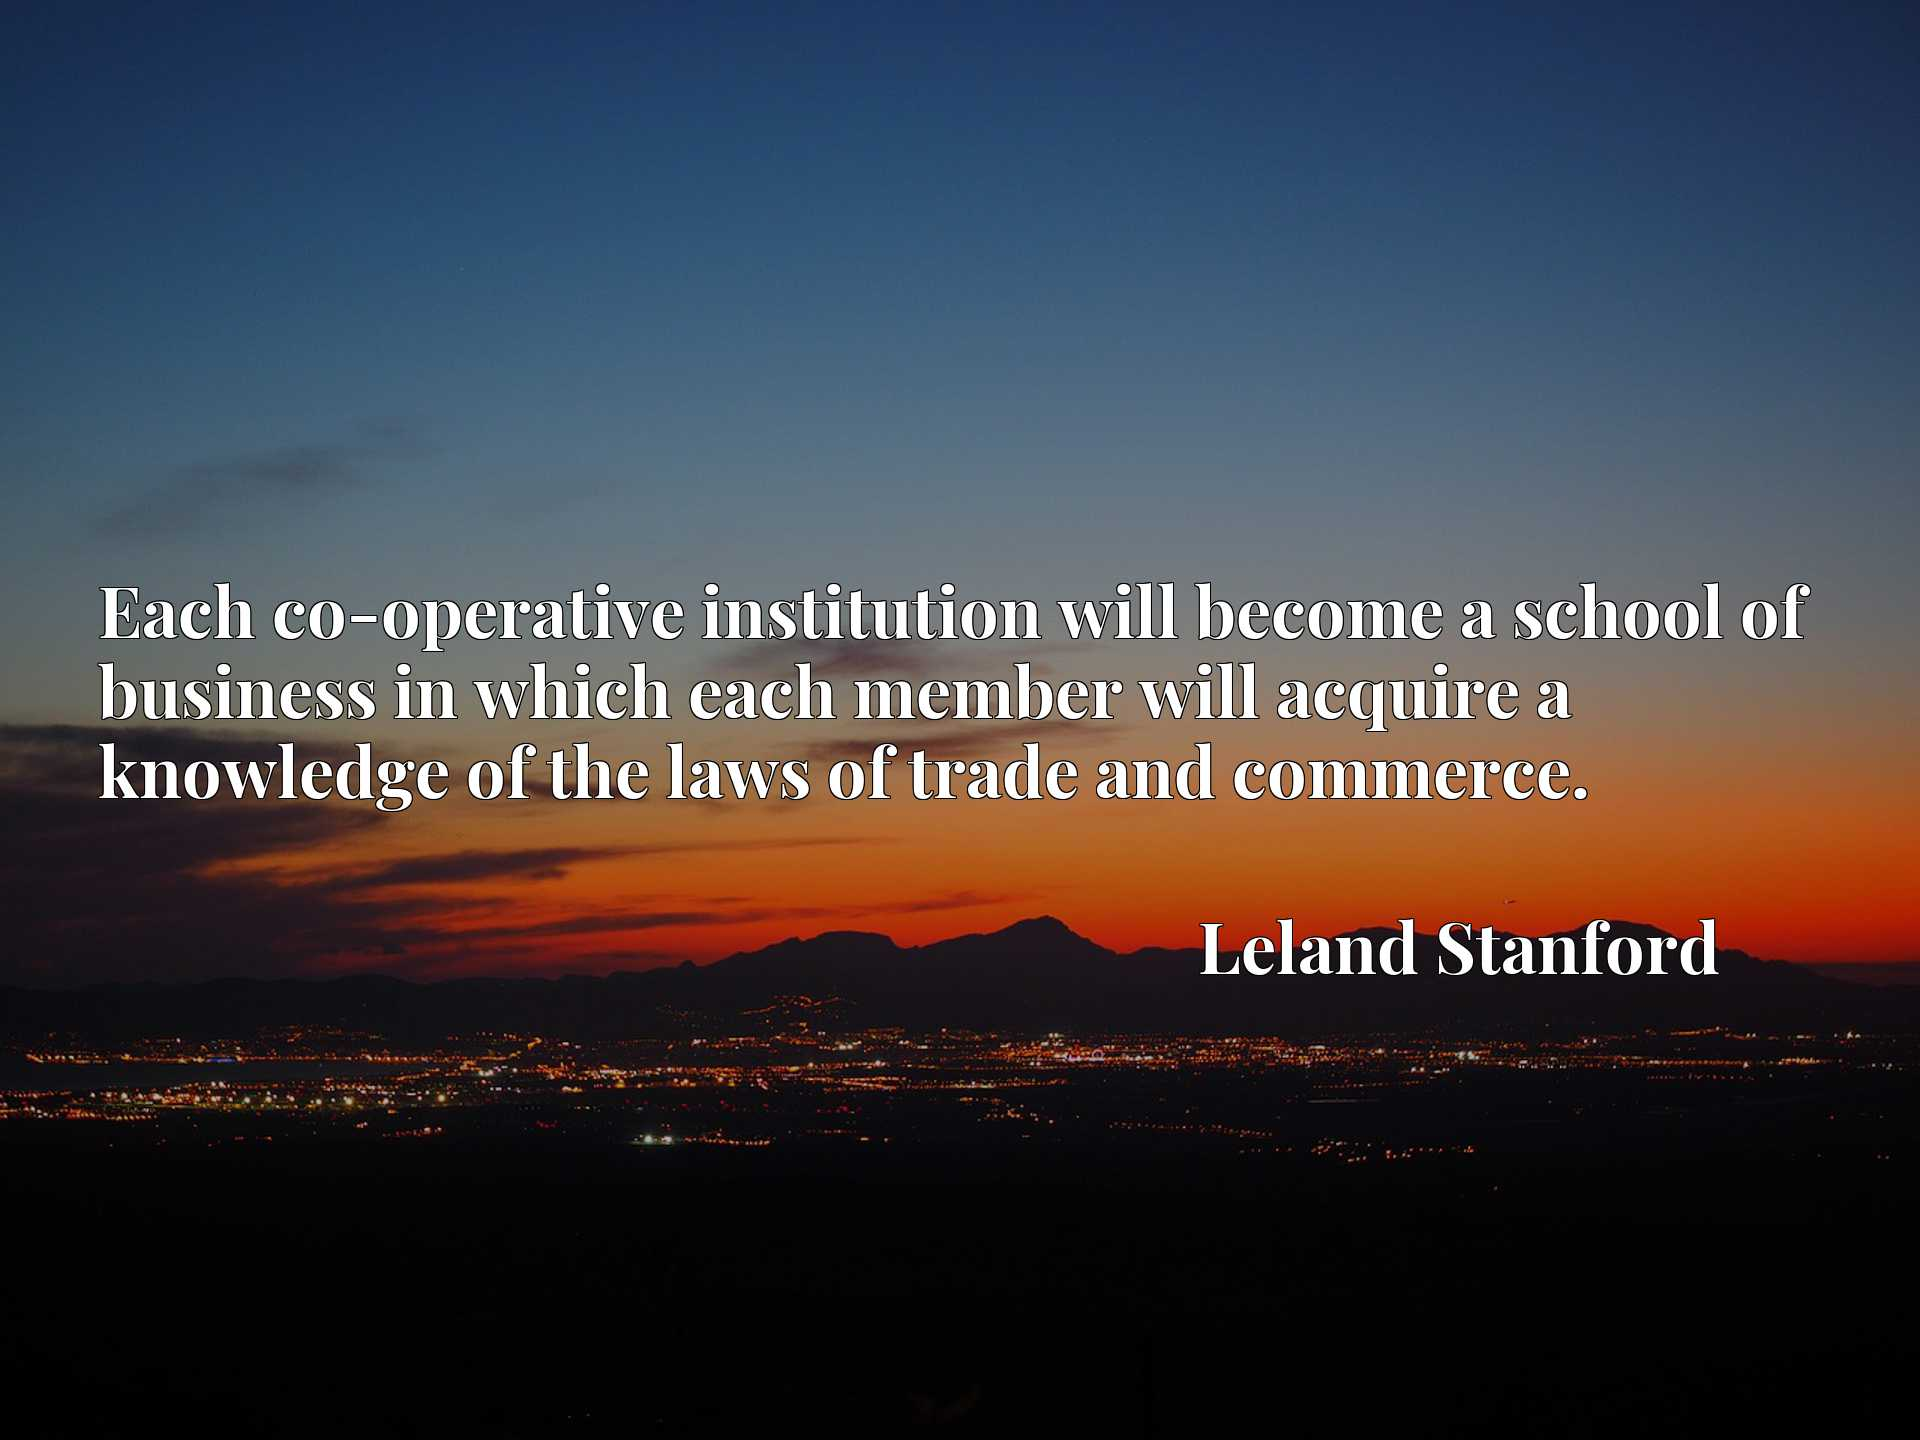 Quote Picture :Each co-operative institution will become a school of business in which each member will acquire a knowledge of the laws of trade and commerce.